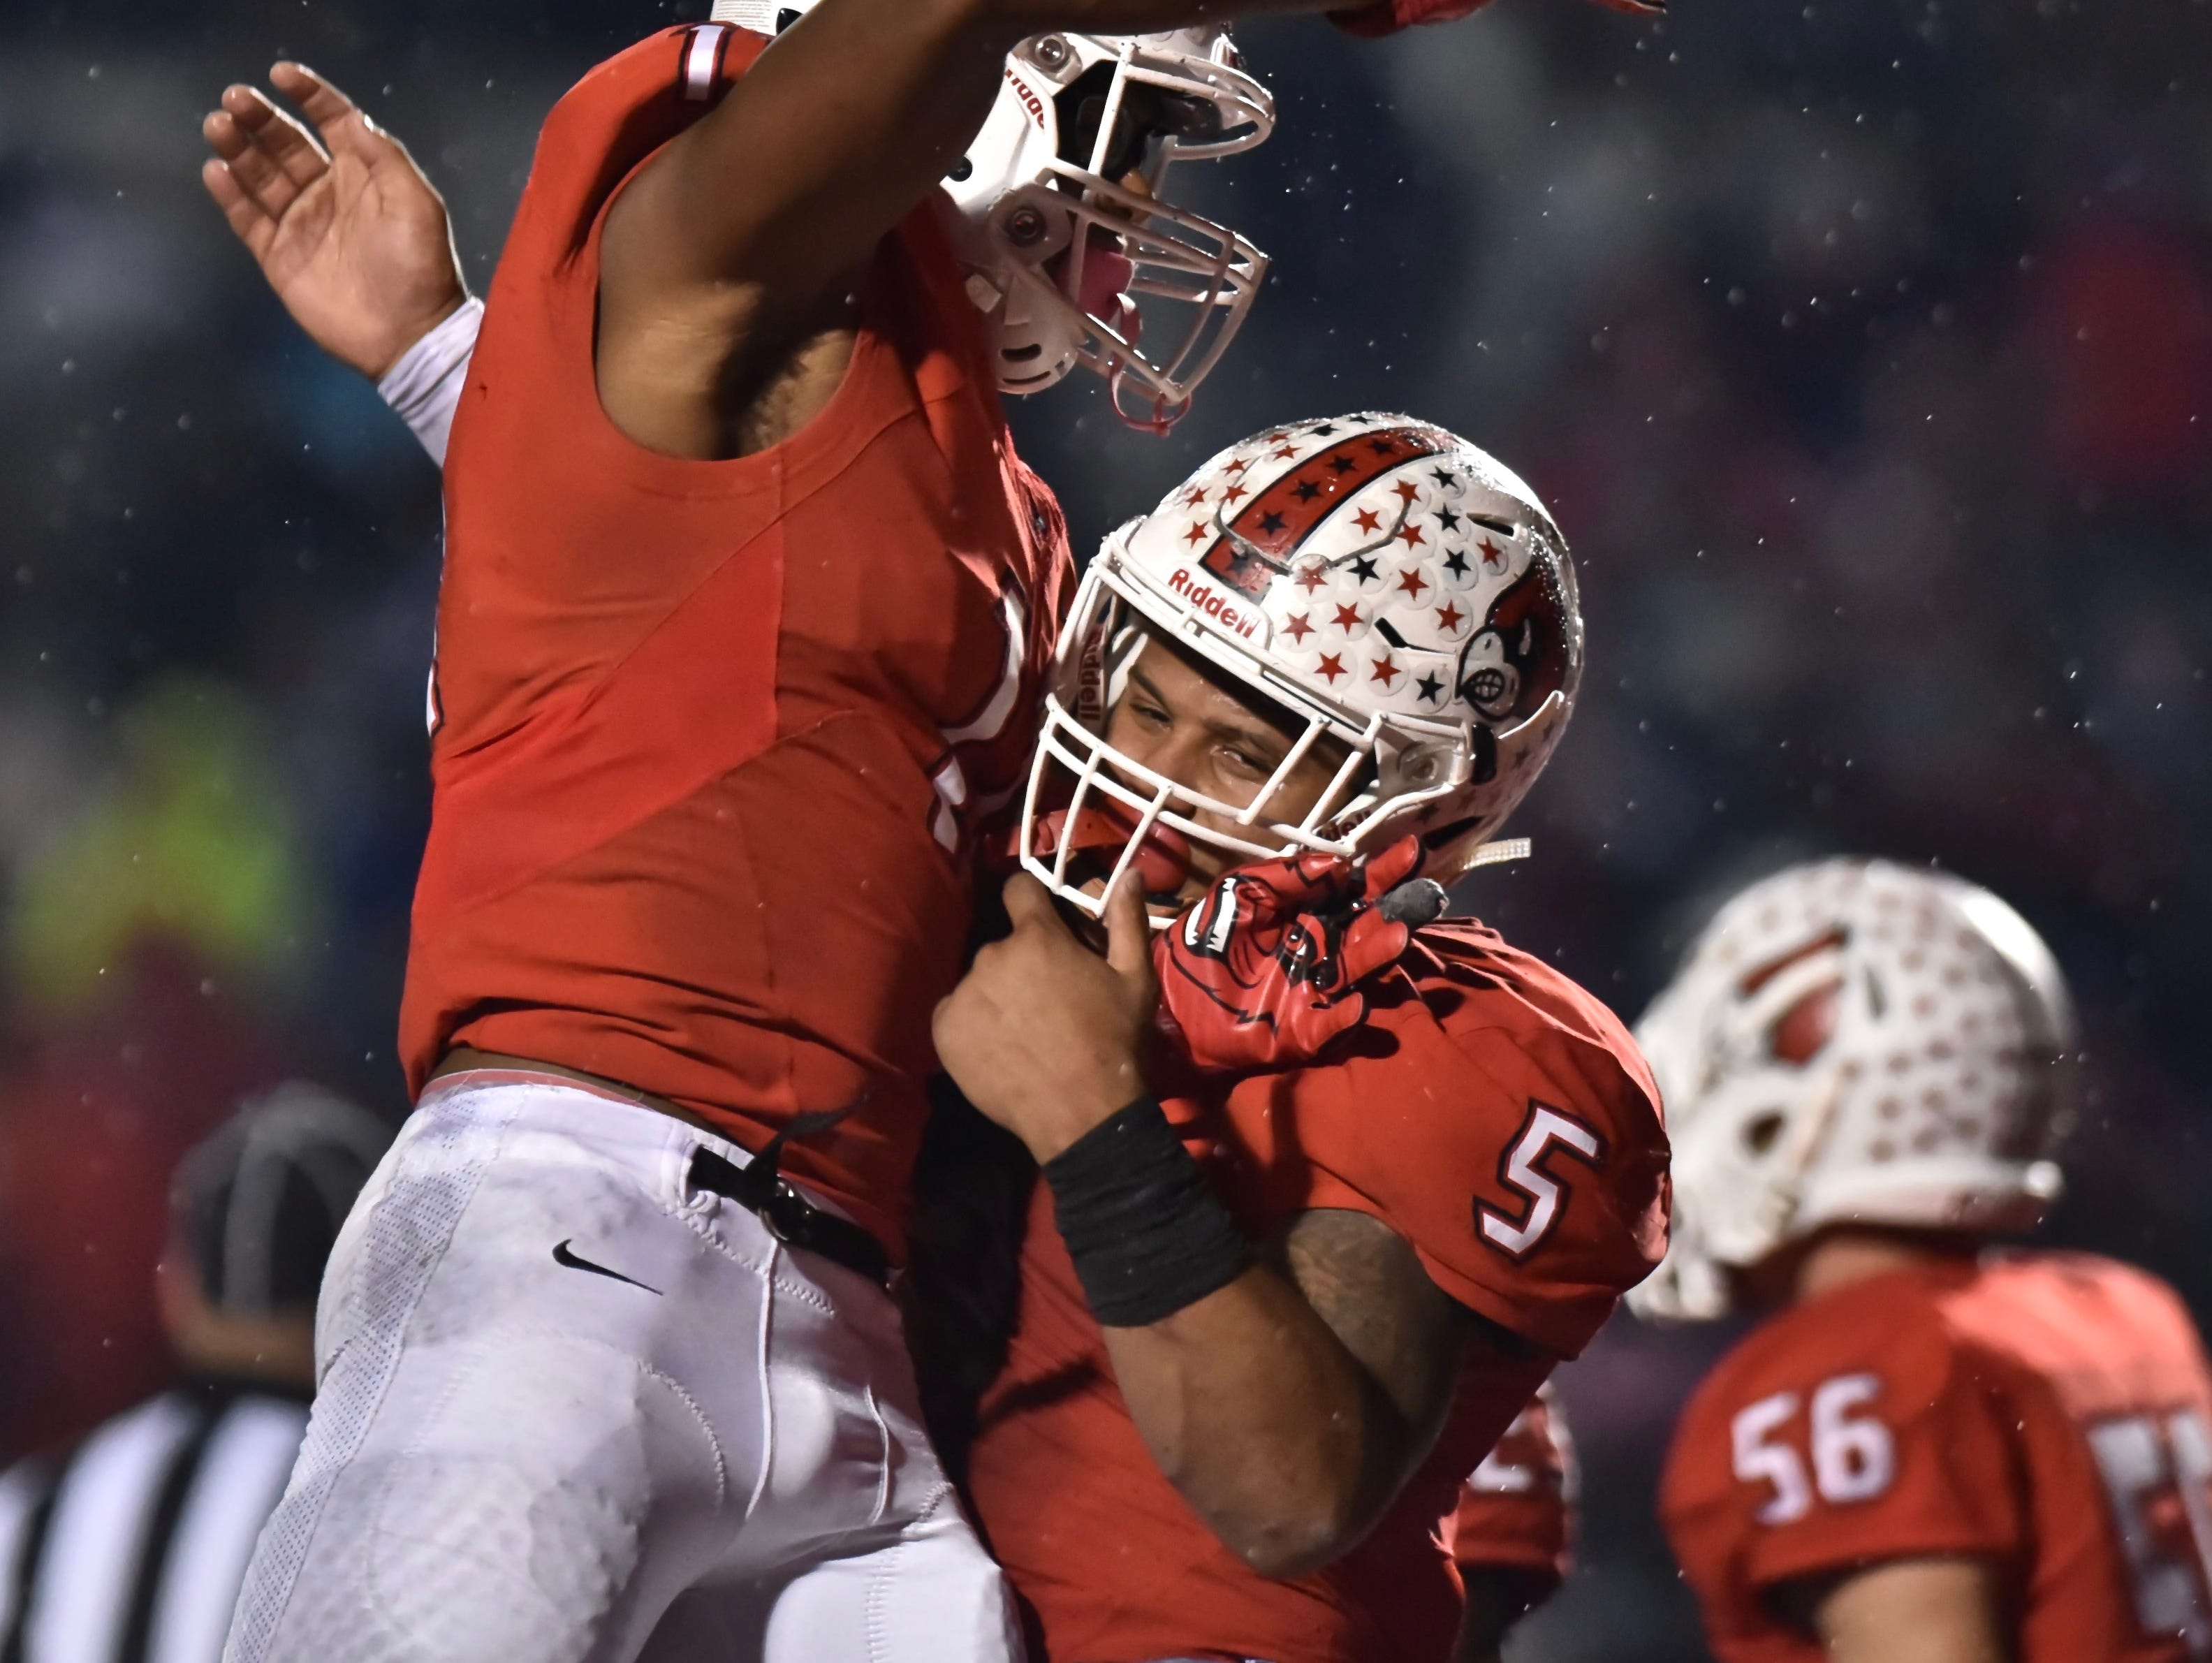 Colerain's Elijah Ford and Ivan Pace Jr. celebrate against Fairfield Friday, Oct. 19, 2018 at Colerain High School